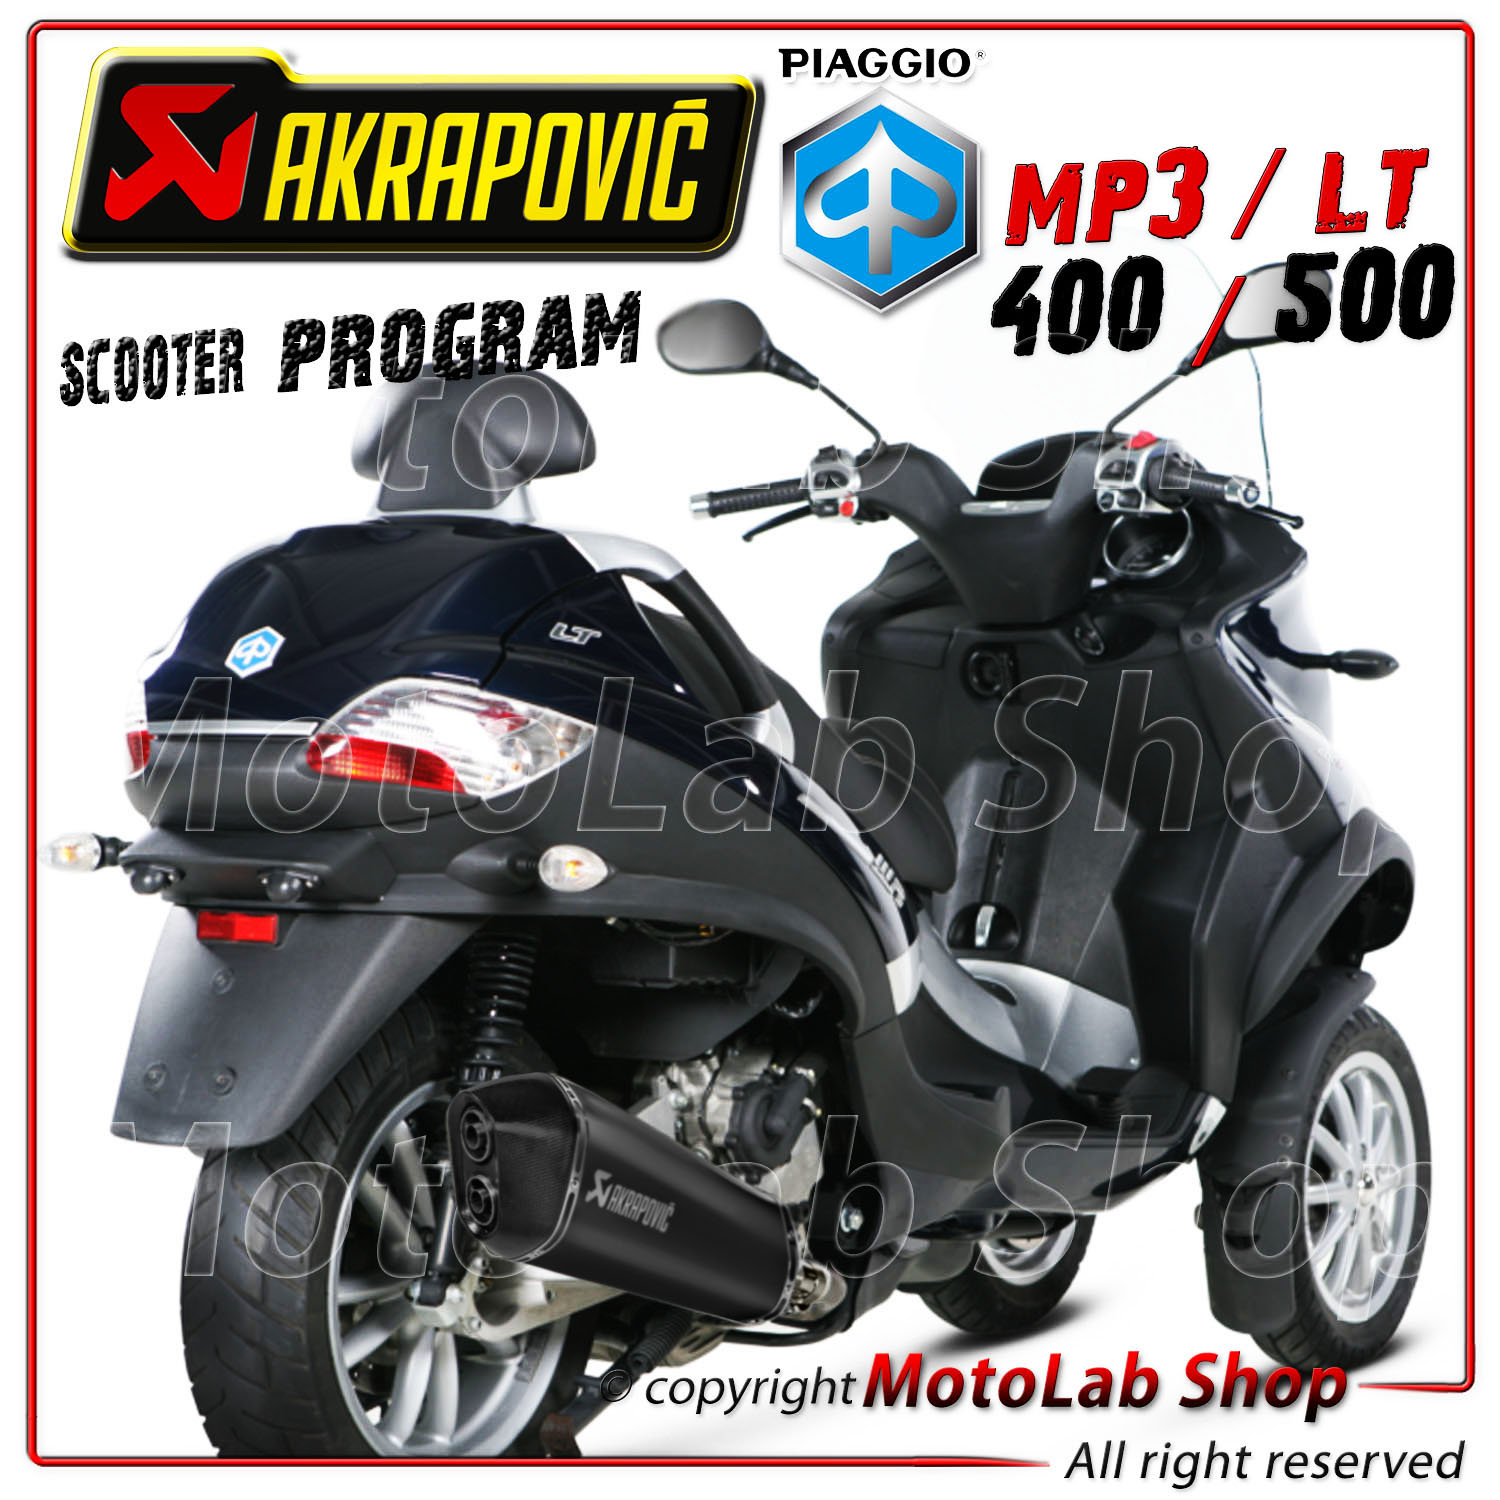 pot d echappement akrapovic conique hexagonal noire piaggio mp3 lt 500 2012 ebay. Black Bedroom Furniture Sets. Home Design Ideas